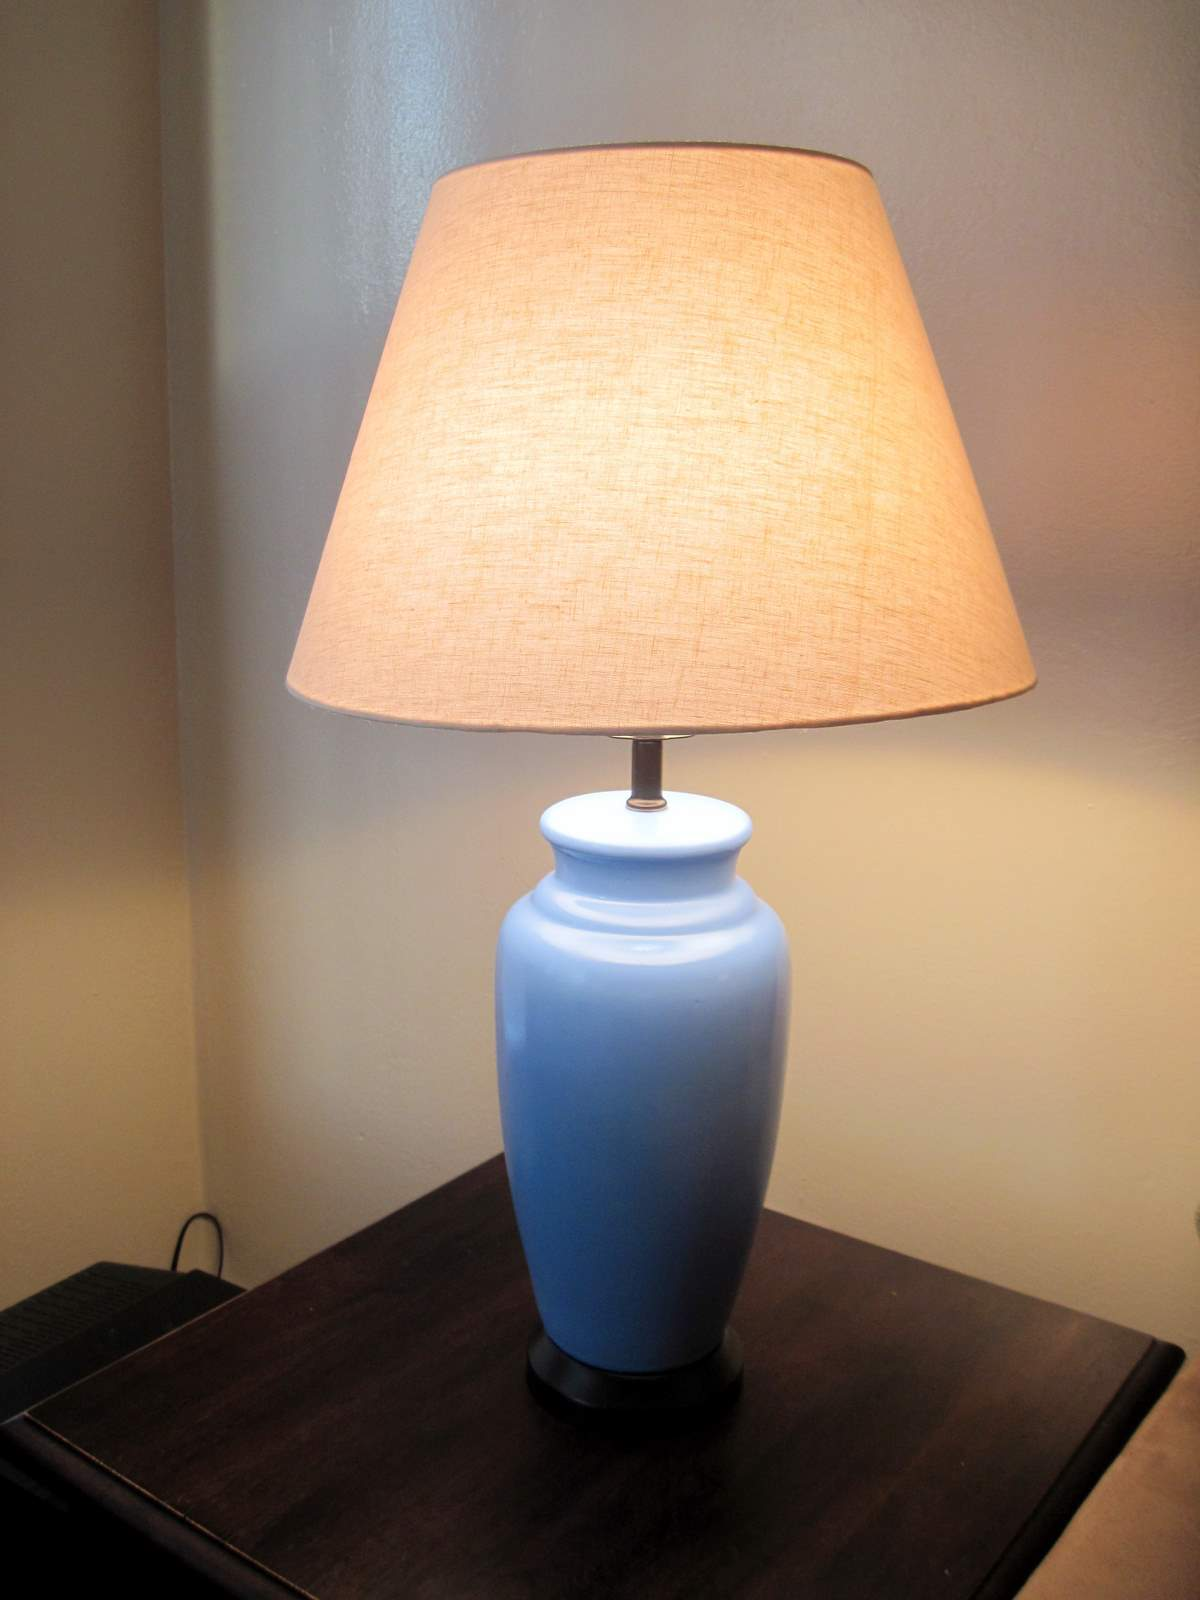 10 Great Spots To Place Side Table Lamps